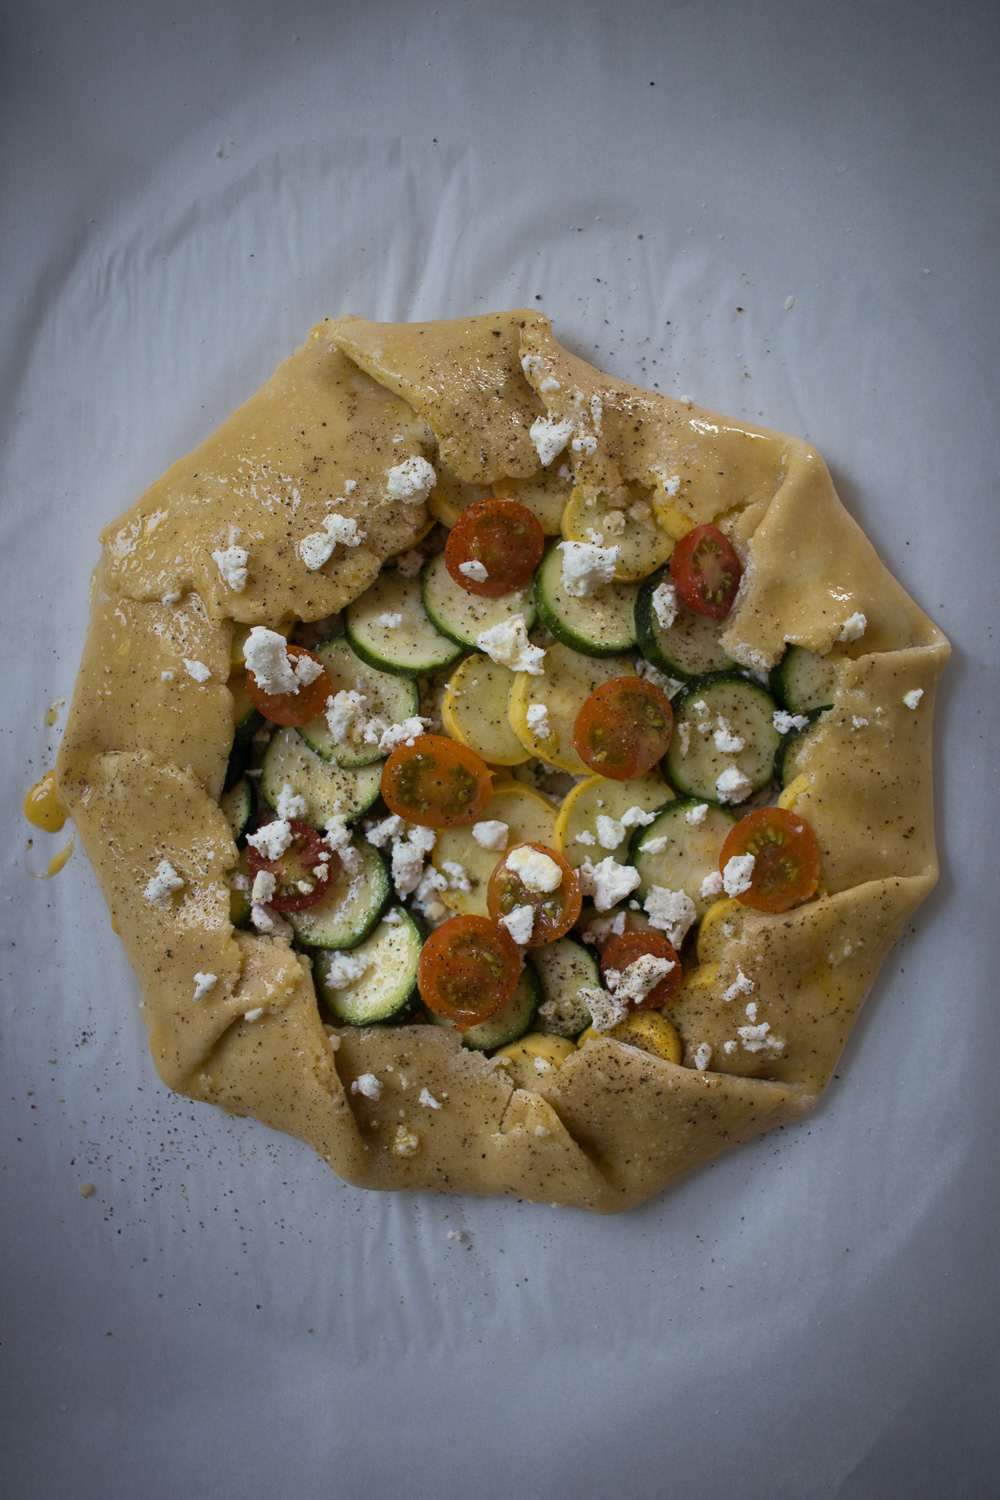 unbaked galette